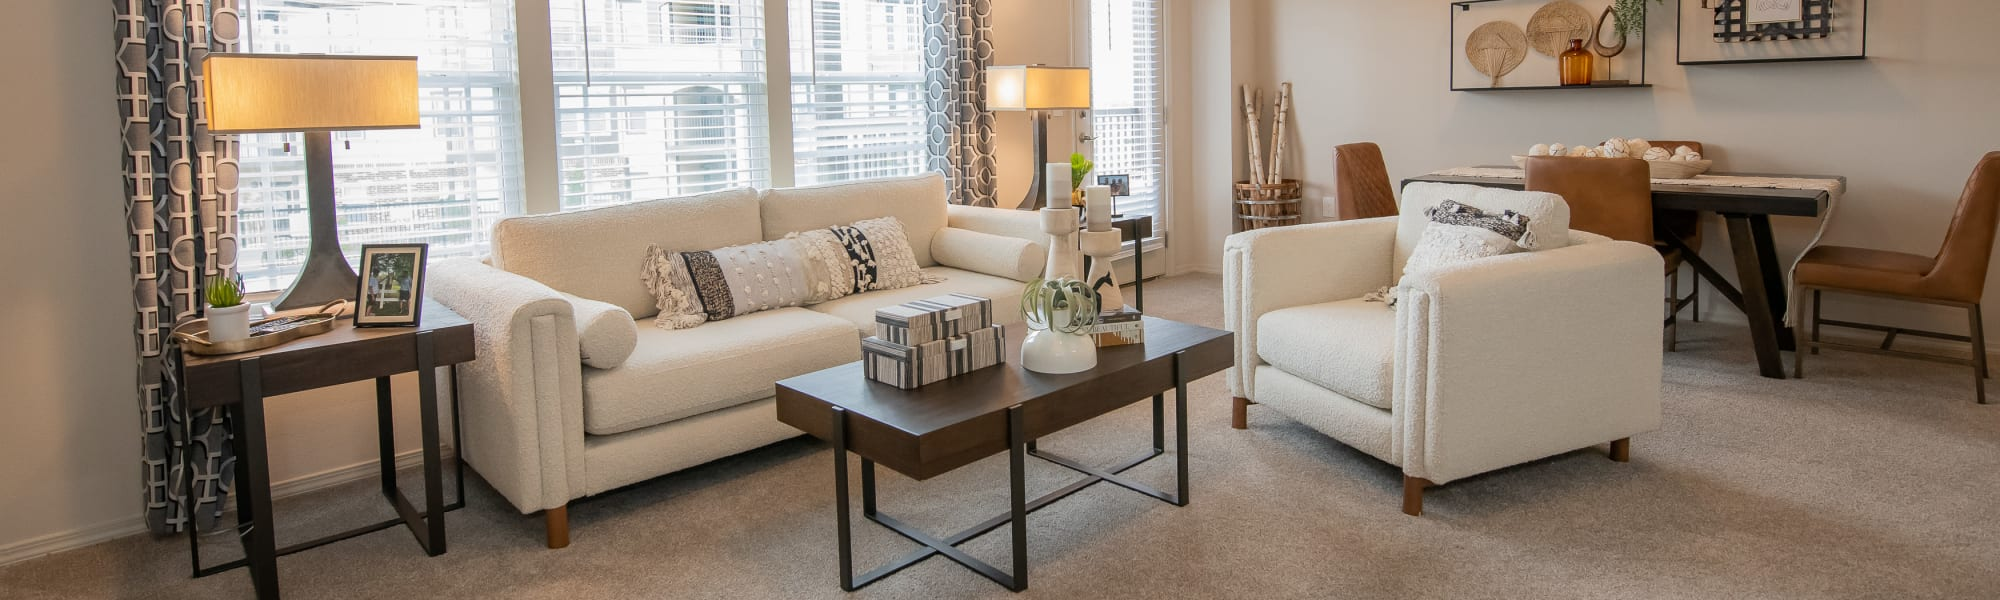 Schedule a tour for Artisan Crossing in Norman, Oklahoma